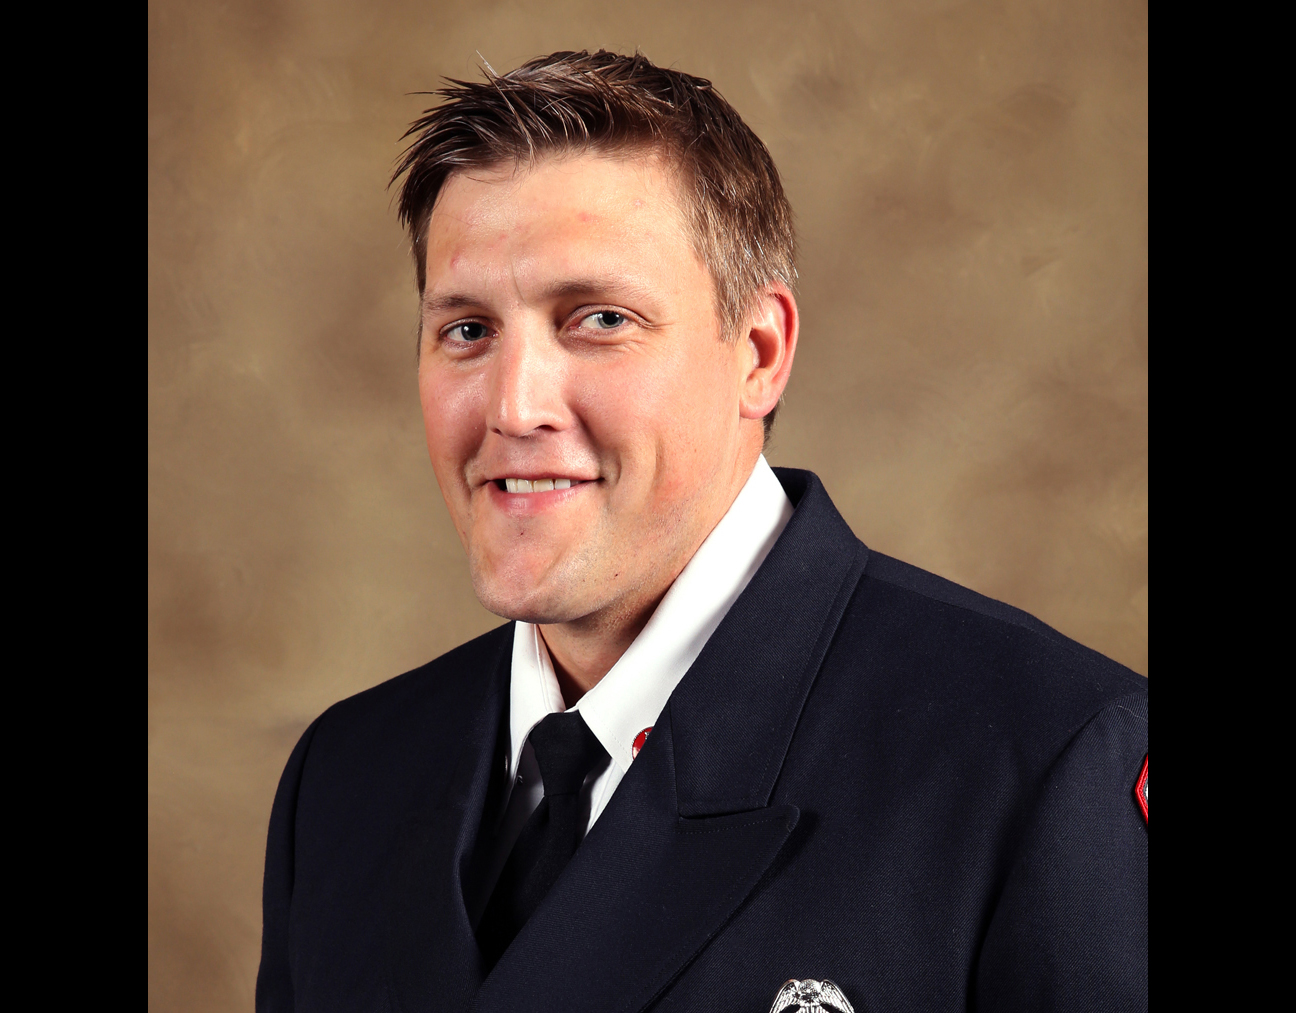 Fire Chief Andrew Slama